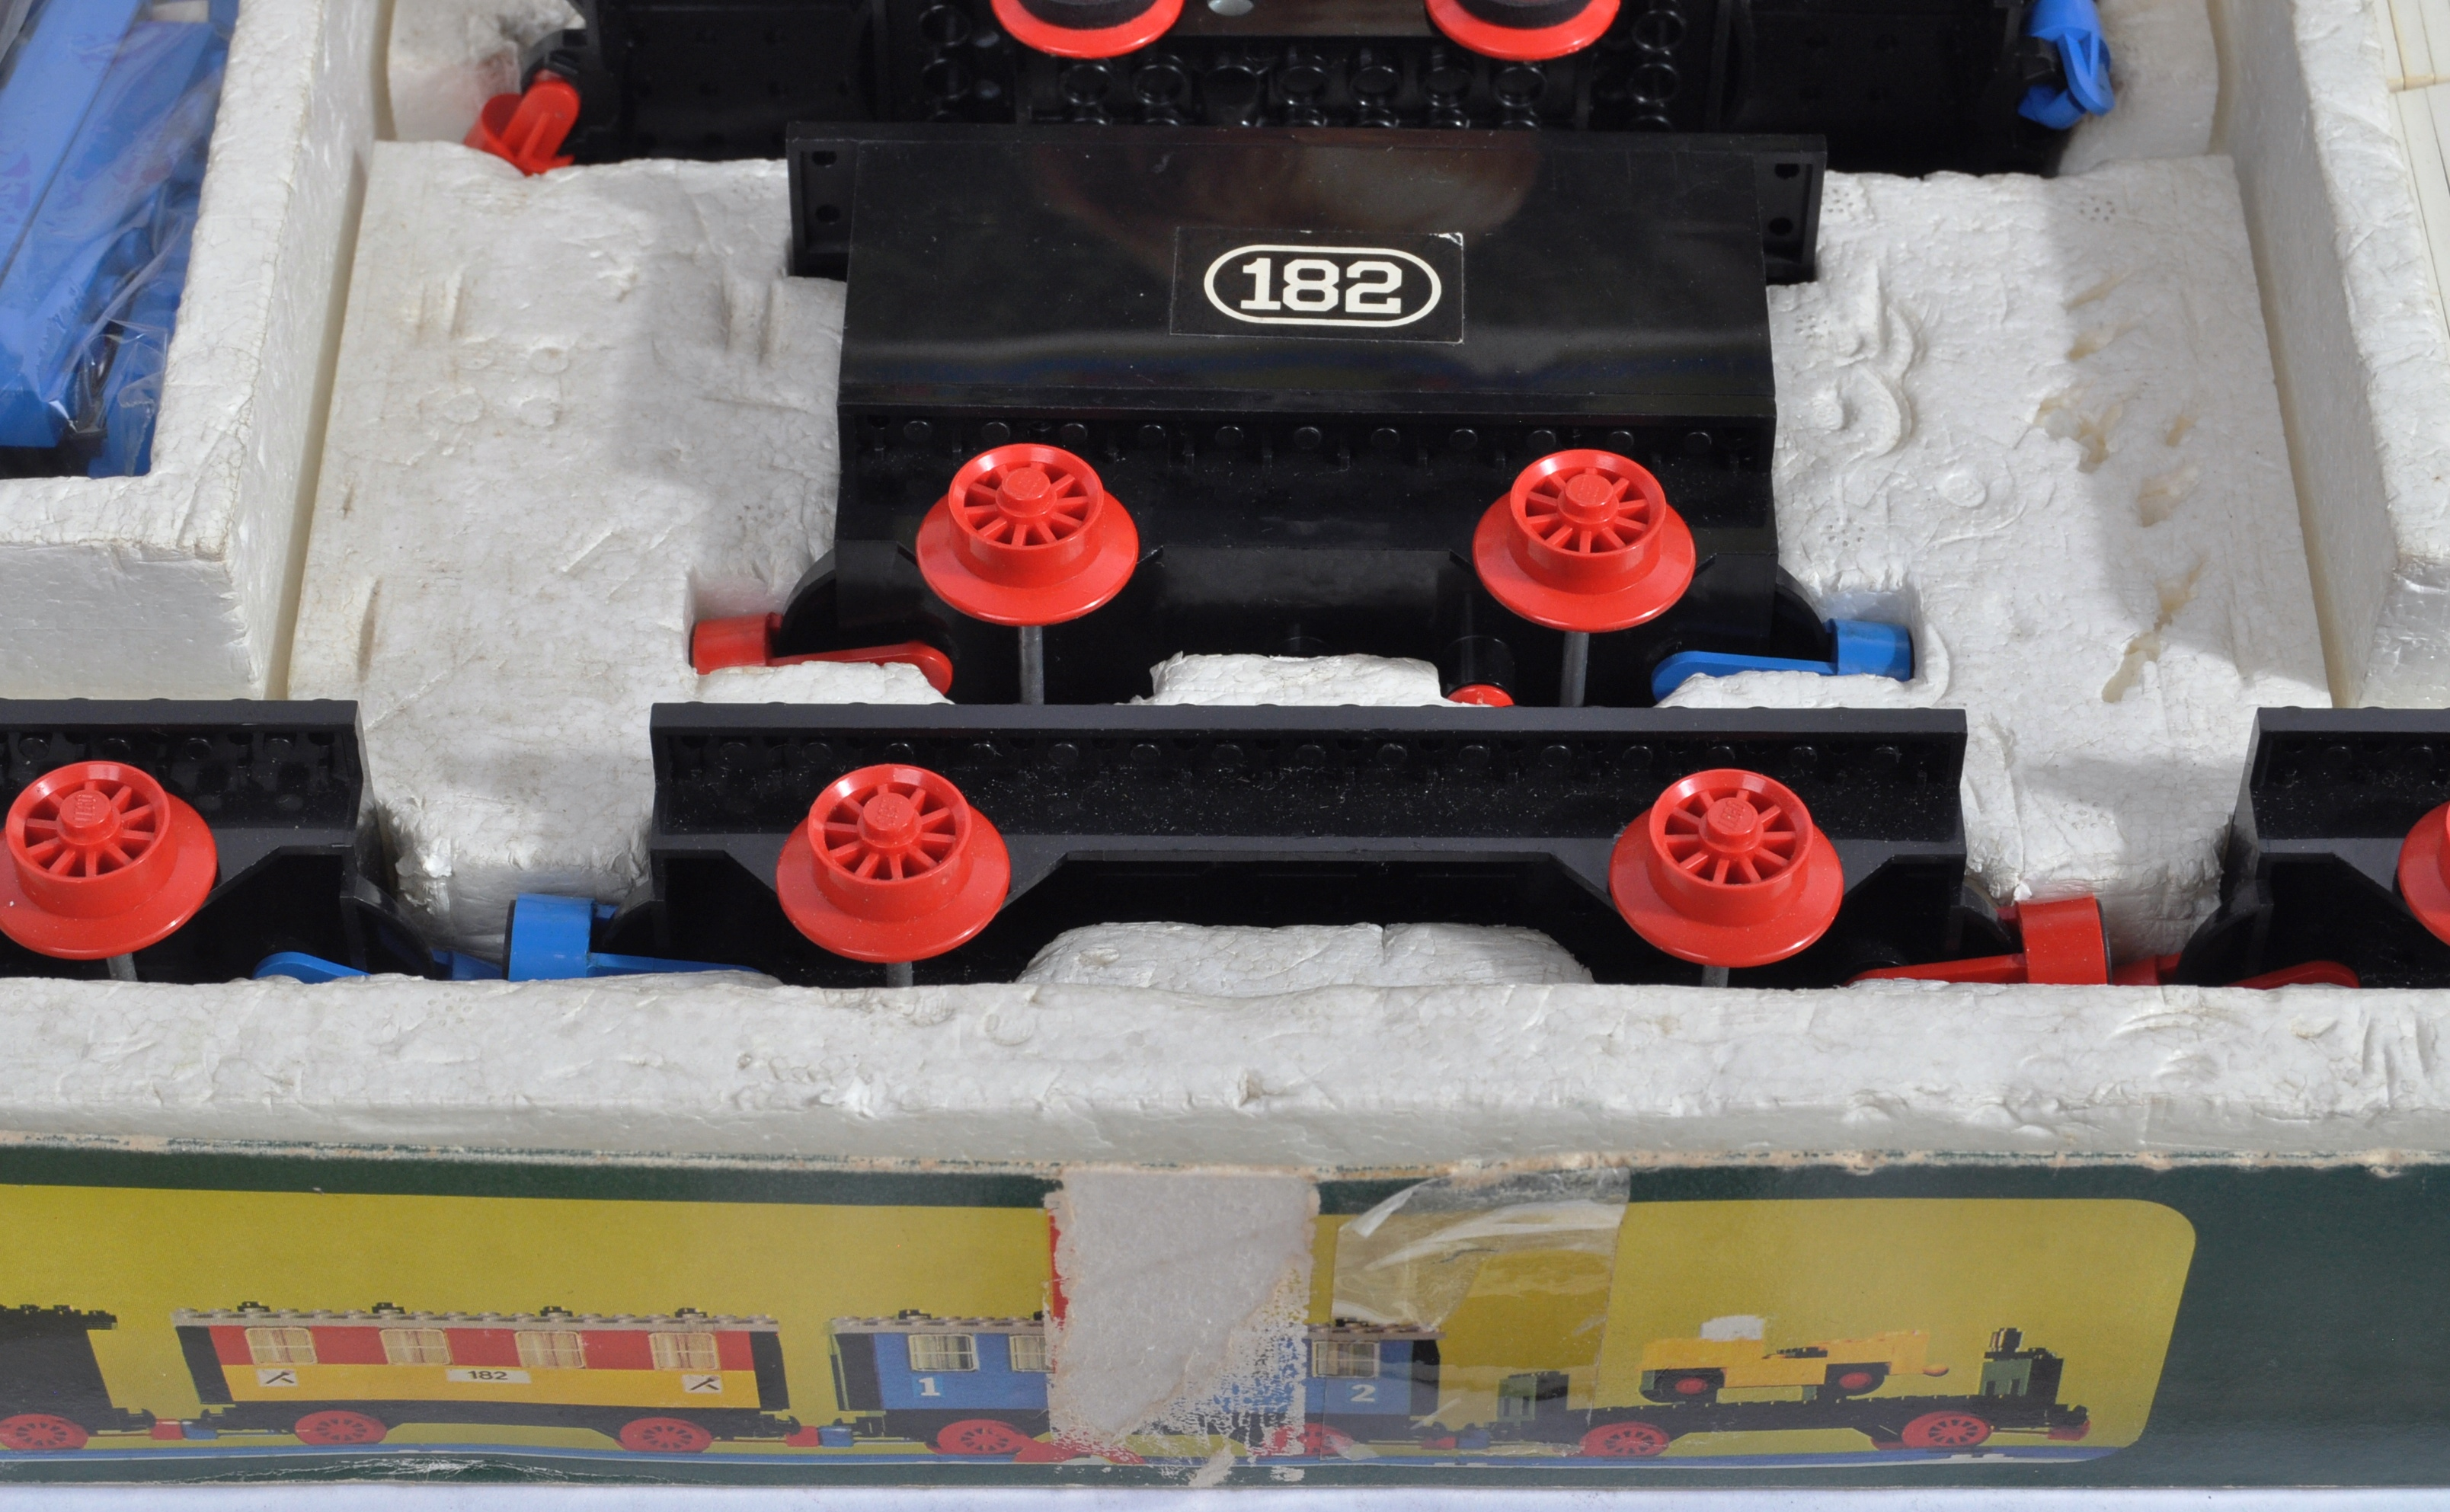 LEGO SET - 182 - TRAIN SET WITH MOTOR AND TRACK - Image 8 of 14